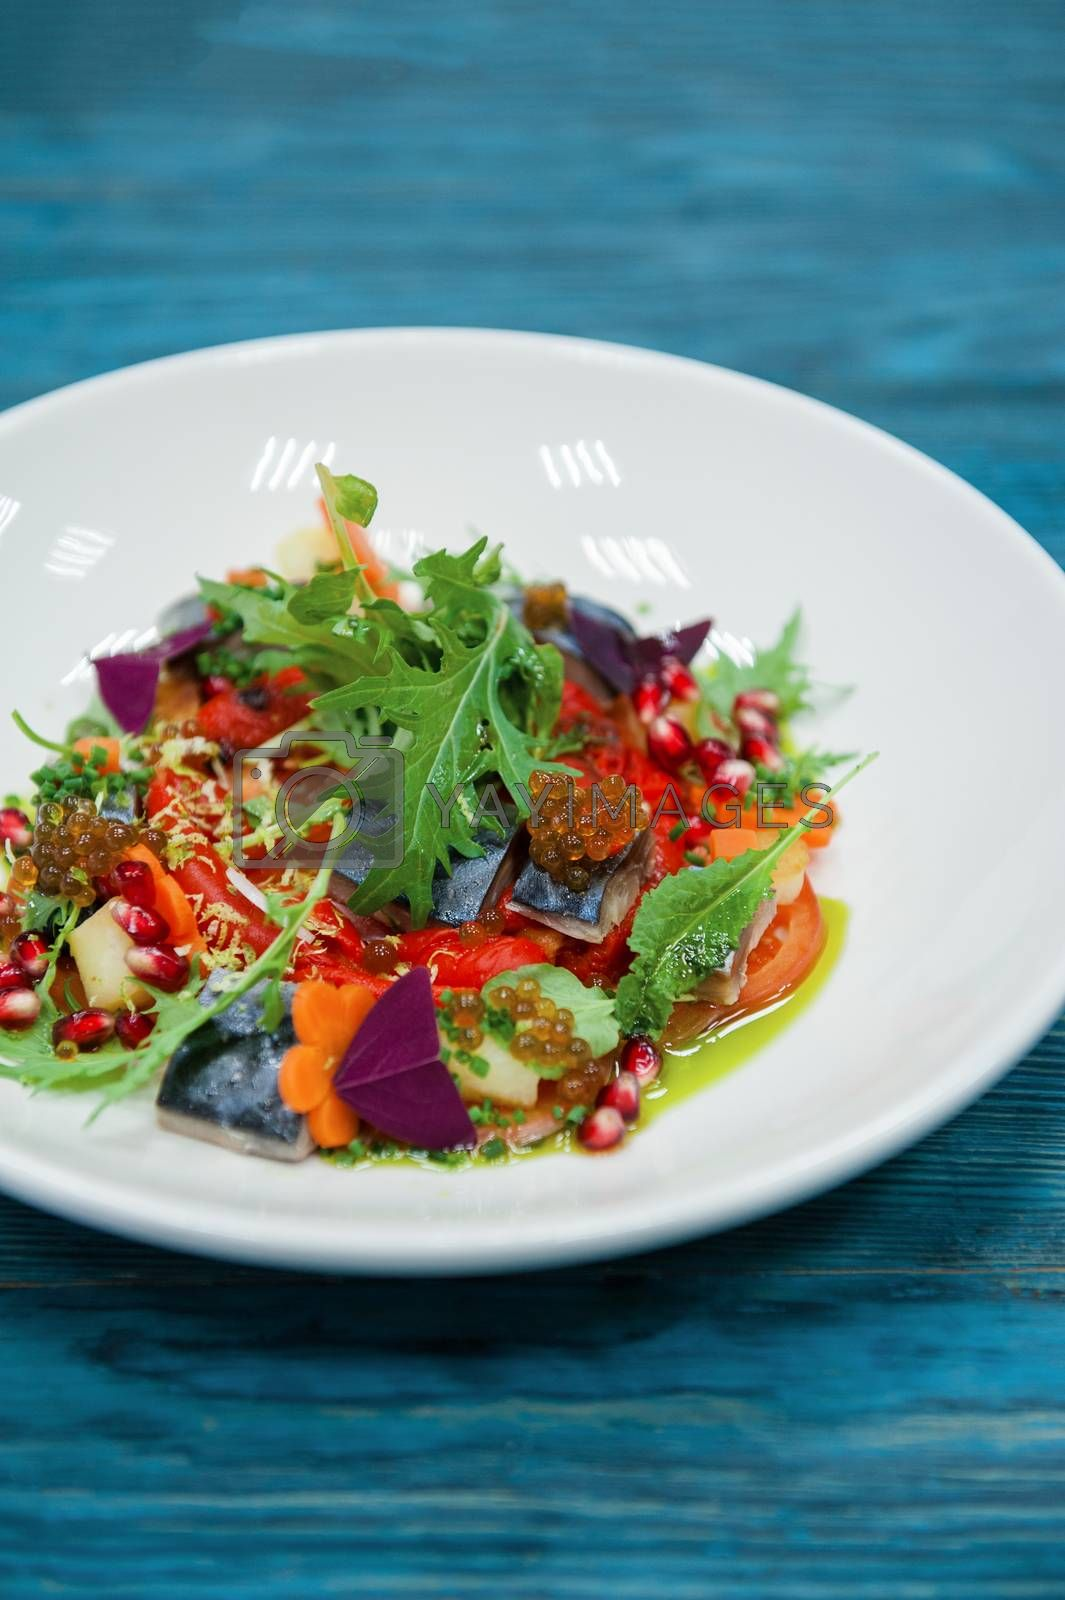 Royalty free image of Escabeche fish dish with caviar: by rusak